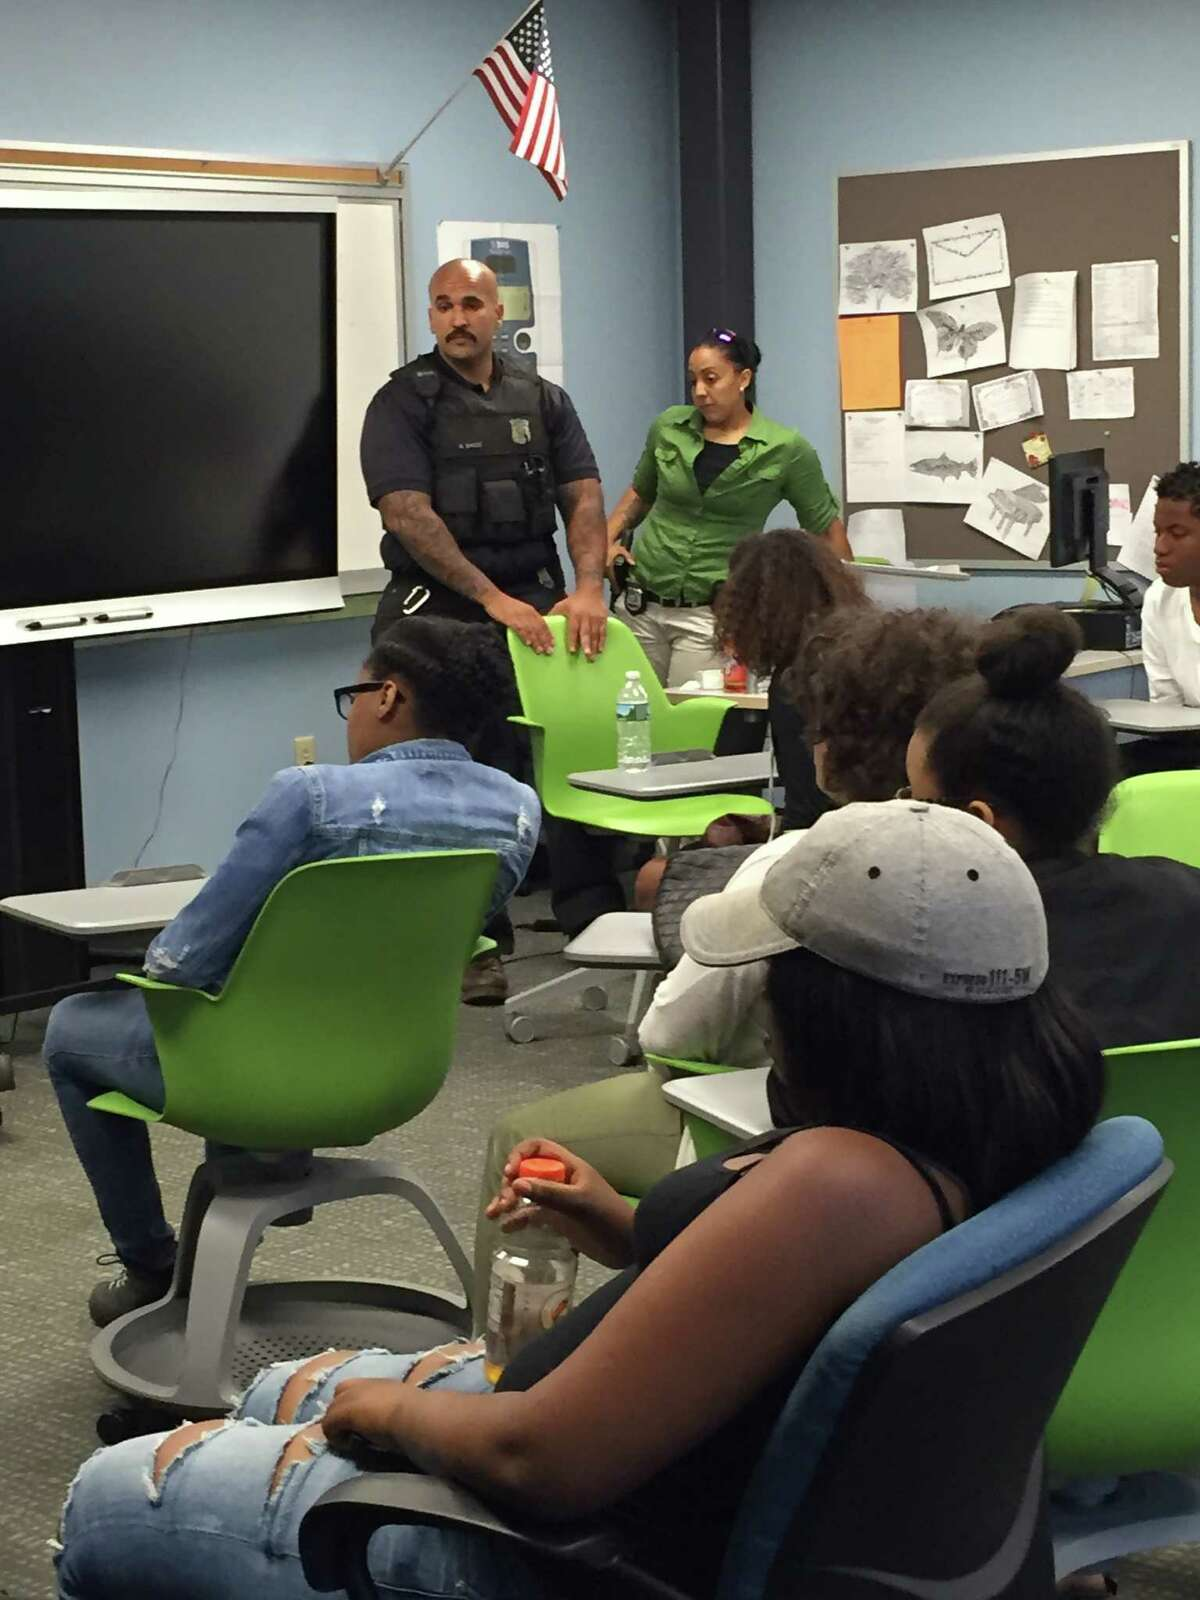 Albany Police officers George Brice, left, and Nicole Reddix, discuss with Albany teens how to remain safe while complying with orders during a police stop at a legal rights workshop organized by the Center for Law and Justice and held Friday at the Capital South Campus Center in Albany. (Paul Grondahl / Times Union)